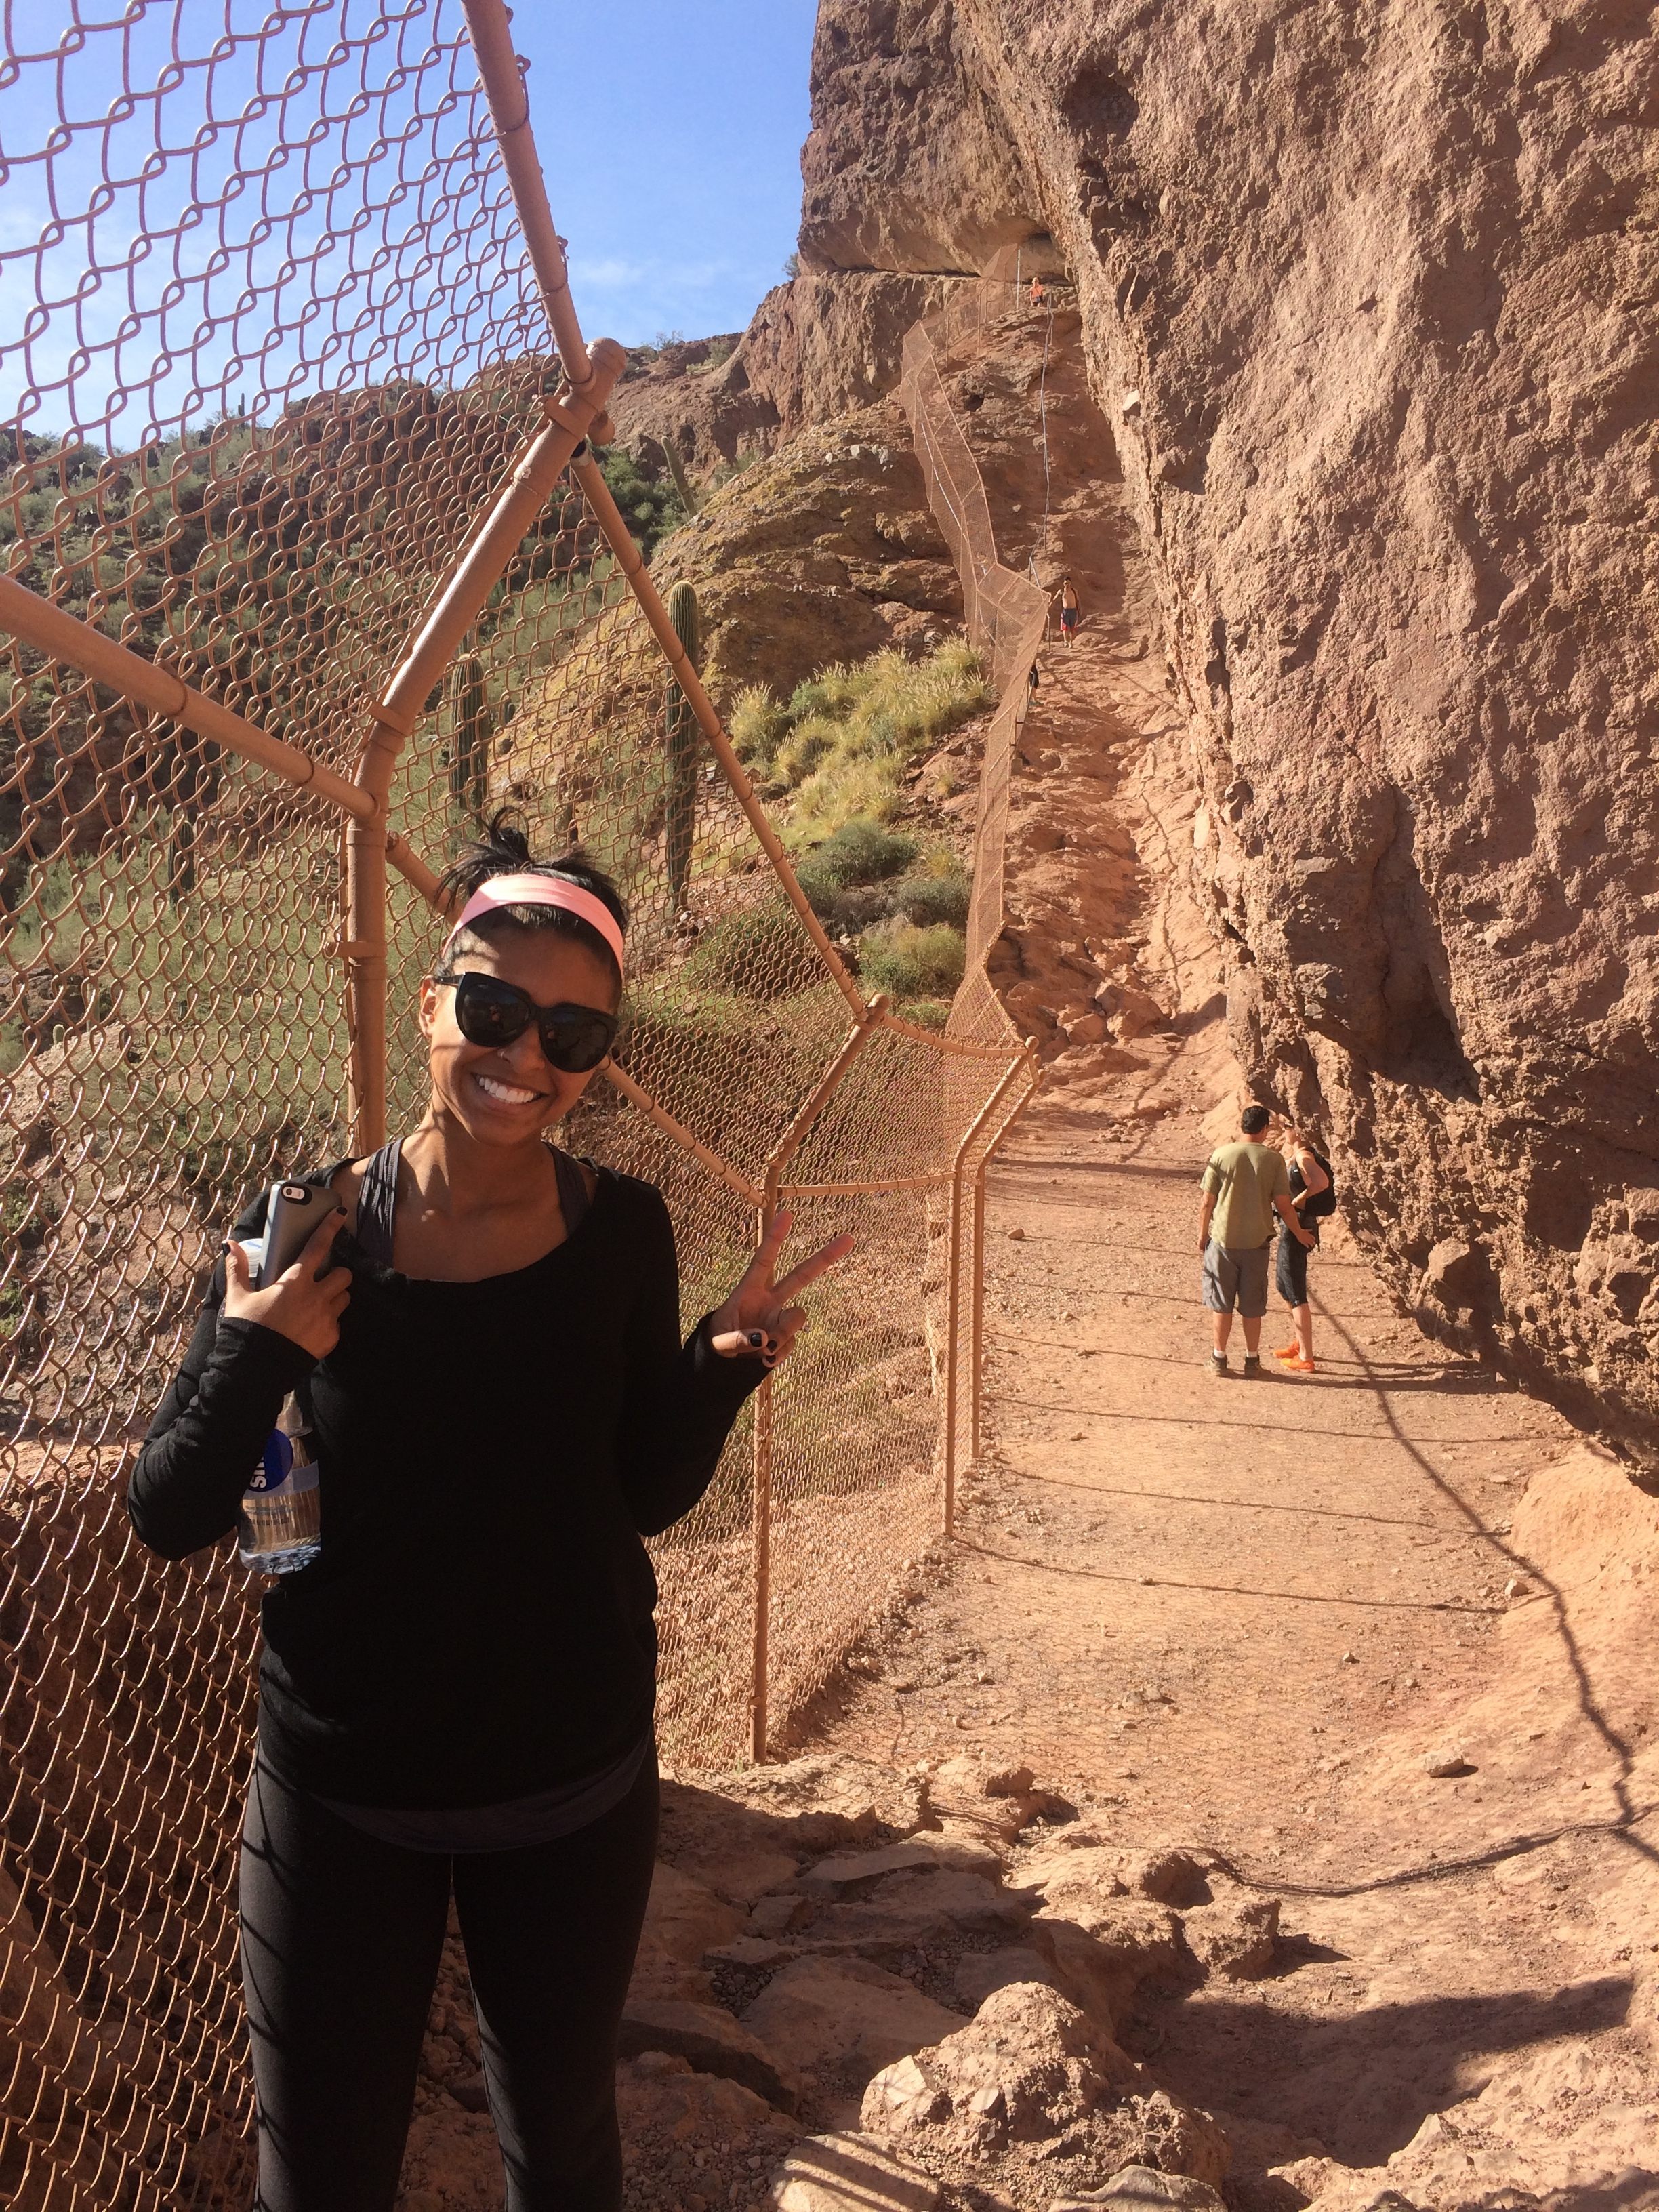 Spring Training. Photo taken right before I realized that Camelback mountain is an actual mountain, and camelback backpacks are named after this sucker for a reason. That hiking experience is not only reccommended for such a mountain as this, it is required if you don't want to almost die.Also, this is right before I considered being air lifted down. See that girl. Her smile is proof that she is a niave young duck. The only thing that kept her from the emergency airlift was her aunt reminding her that it would likely make the news. And the entire Texas Rangers team would not let her live this one down.  For the record, I survived. And this is not a hike. It is a full fledge Climb to the Heavens. And that stair case is not-a-joke. Object appears smaller through this photograph. Do Not be fooled.